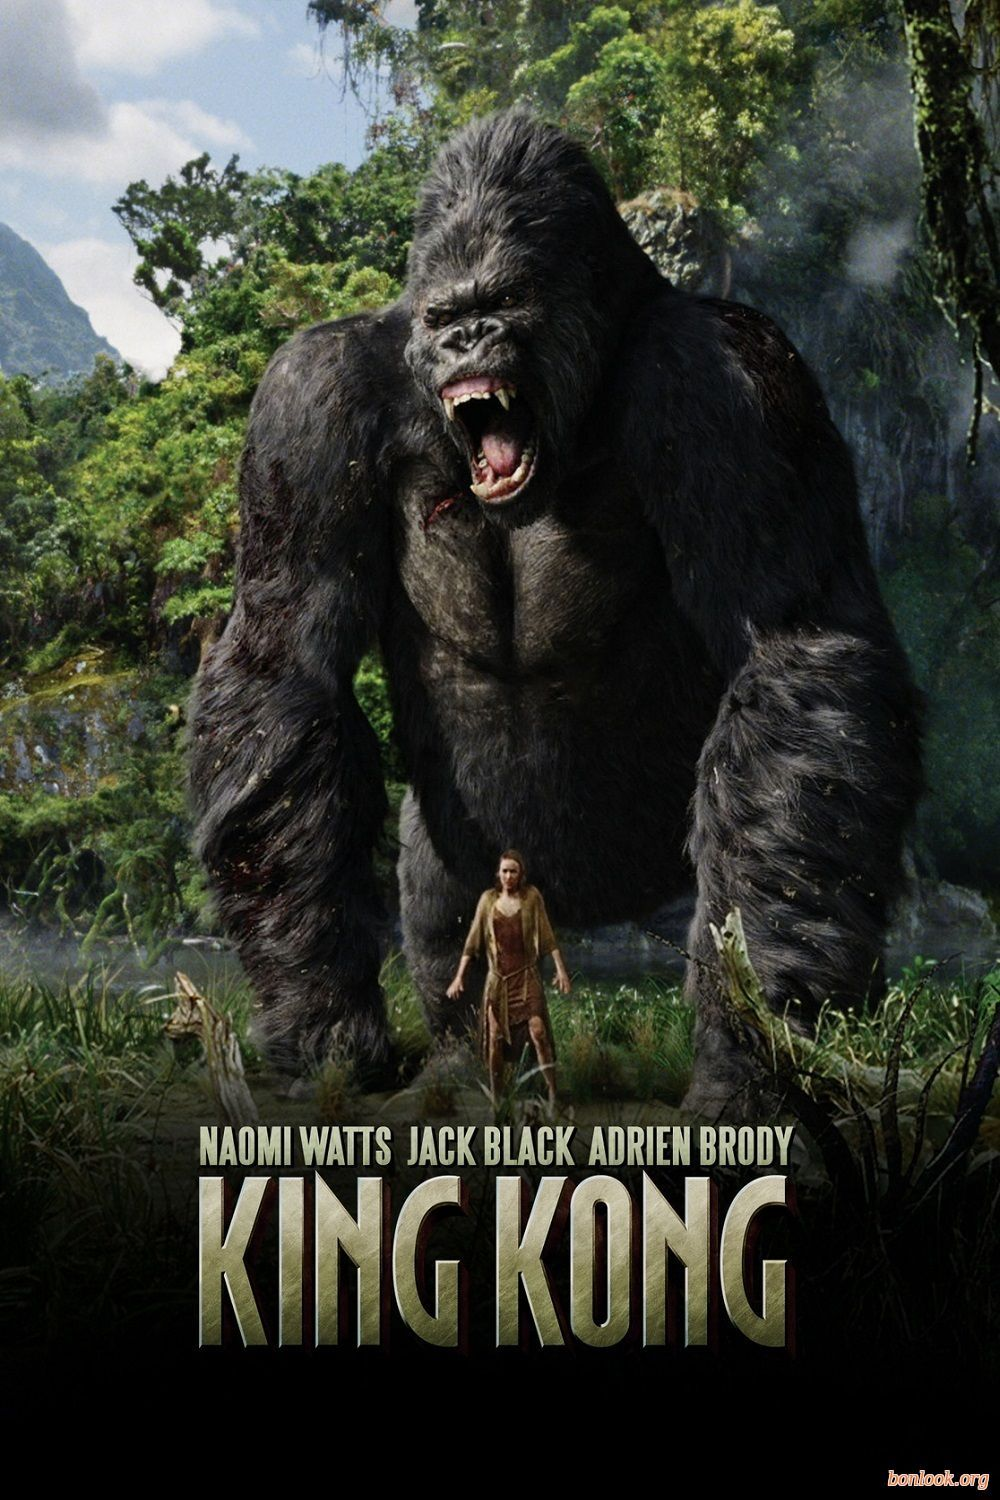 King Kong 1976 12 Directed By John Guillermin Starring Jeff Bridges Charles Grodin Jessica Lange It Is A King Kong Movie King Kong King Kong 2005